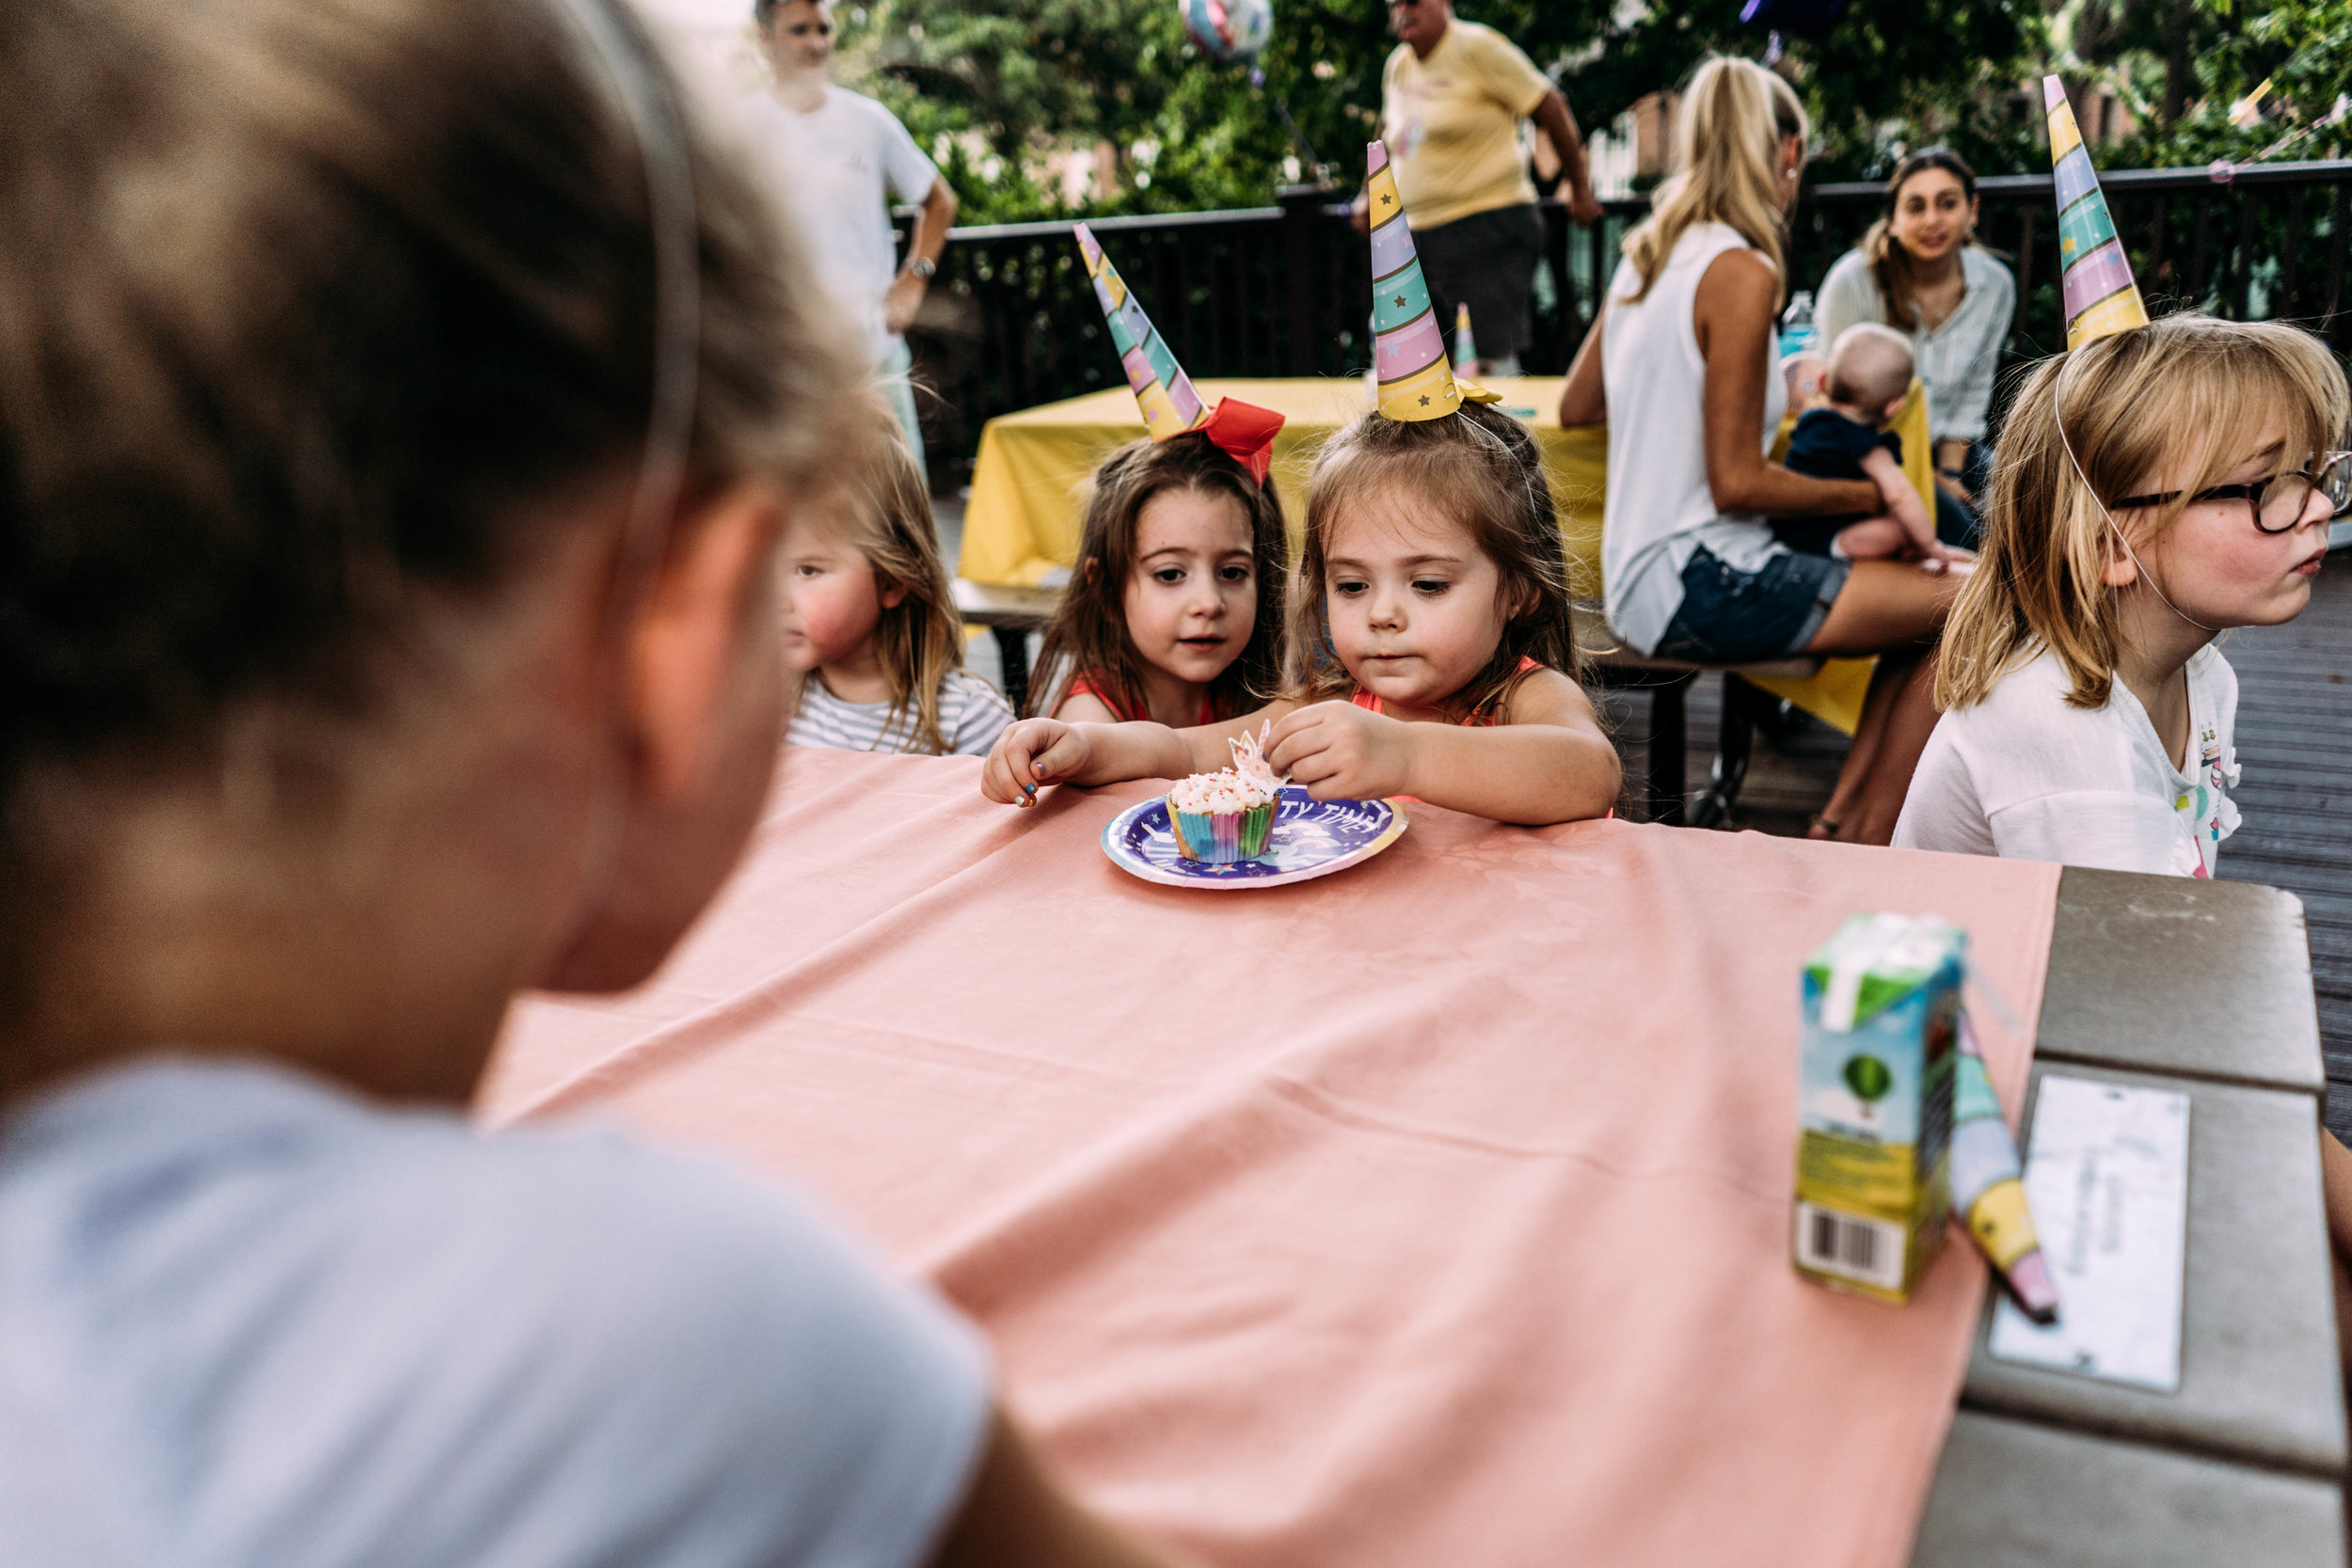 birthday party at the park-21.jpg